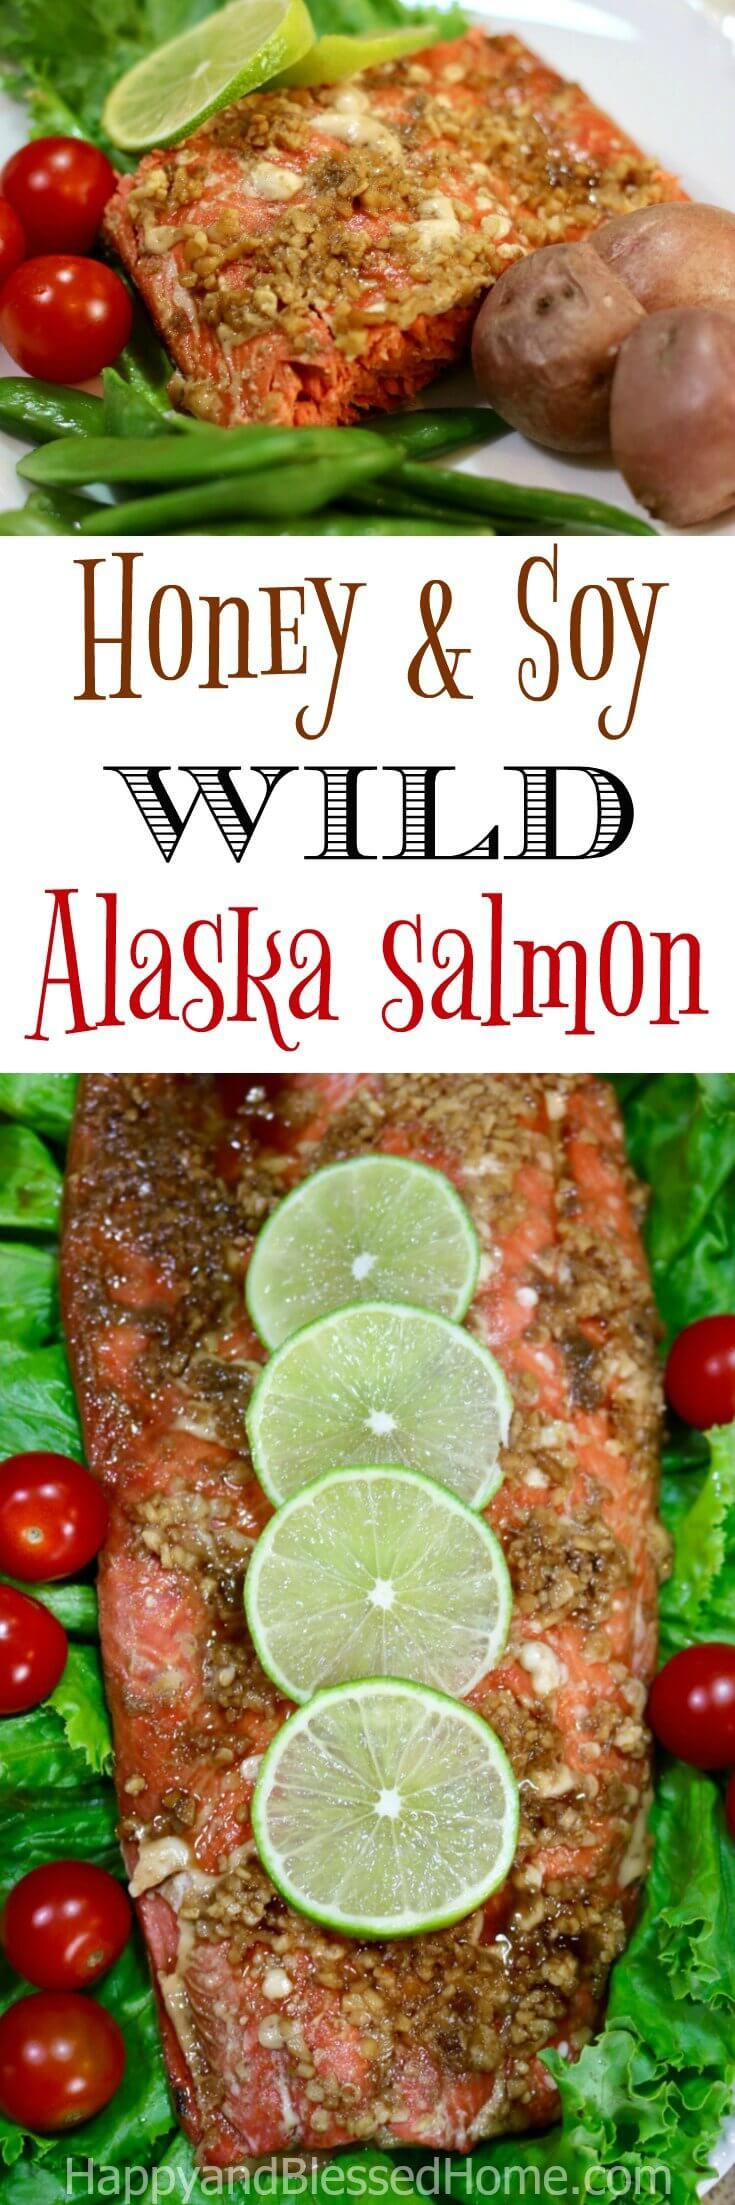 Easy Recipe for Honey and Soy wild Alaska salmon - Sometimes you want sweet, and sometimes you want savory. And other times… well, you want a little bit of both. Guess what, with this easy recipe for Honey and Soy wild Alaska Salmon you get the sweet taste of honey and the savory flavors of soy and garlic. The aroma is amazing and the entire family will be excited over the Sockeye salmon baking in the oven. #ad #IC #AskForAlaska